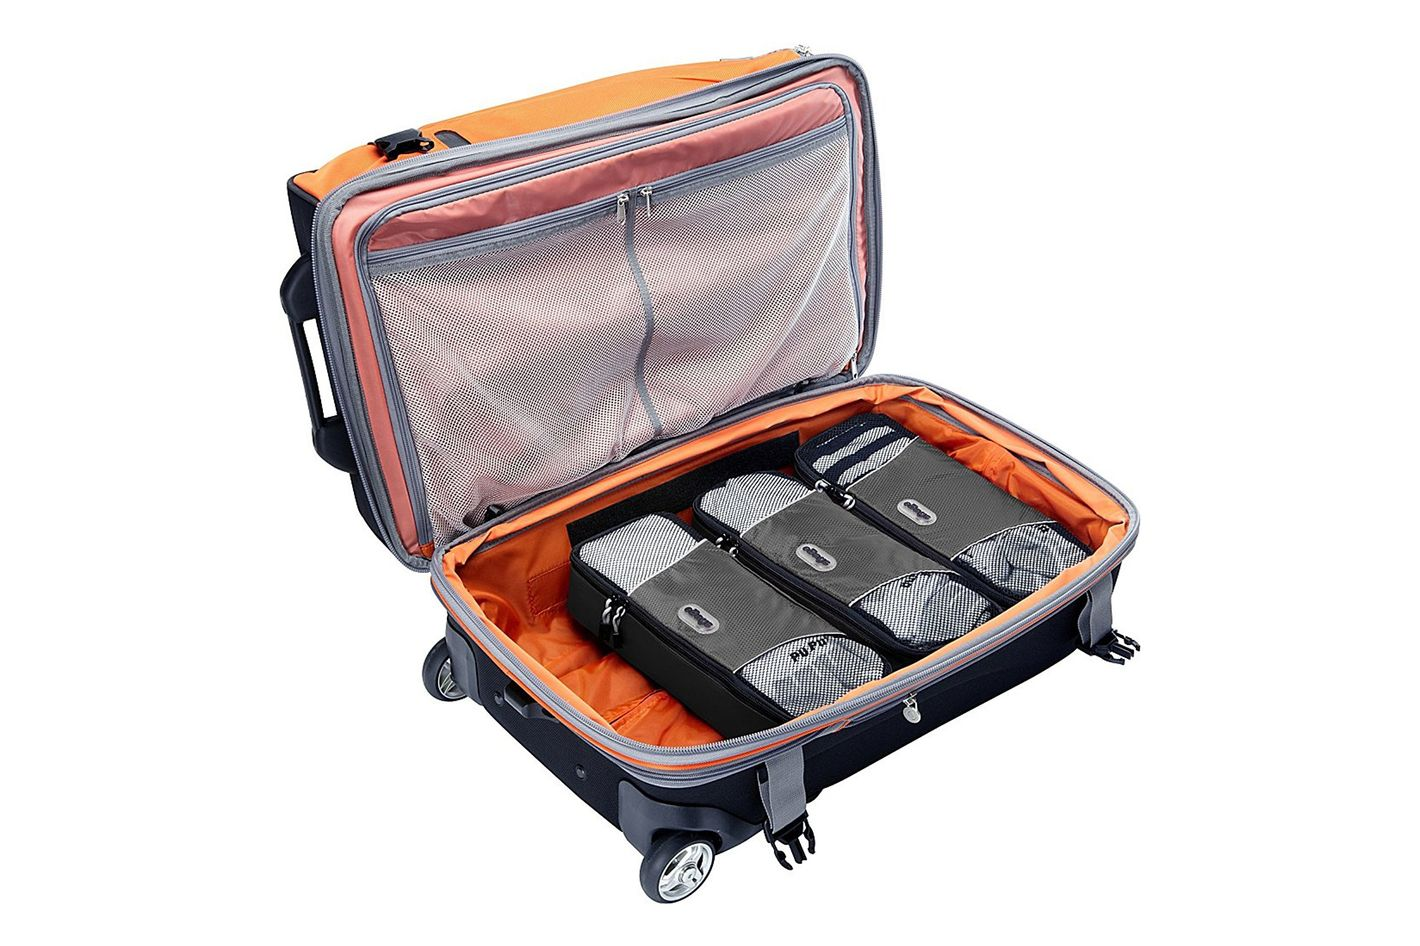 539ad85dc Best Packing Cubes, Luggage Organizers on Amazon